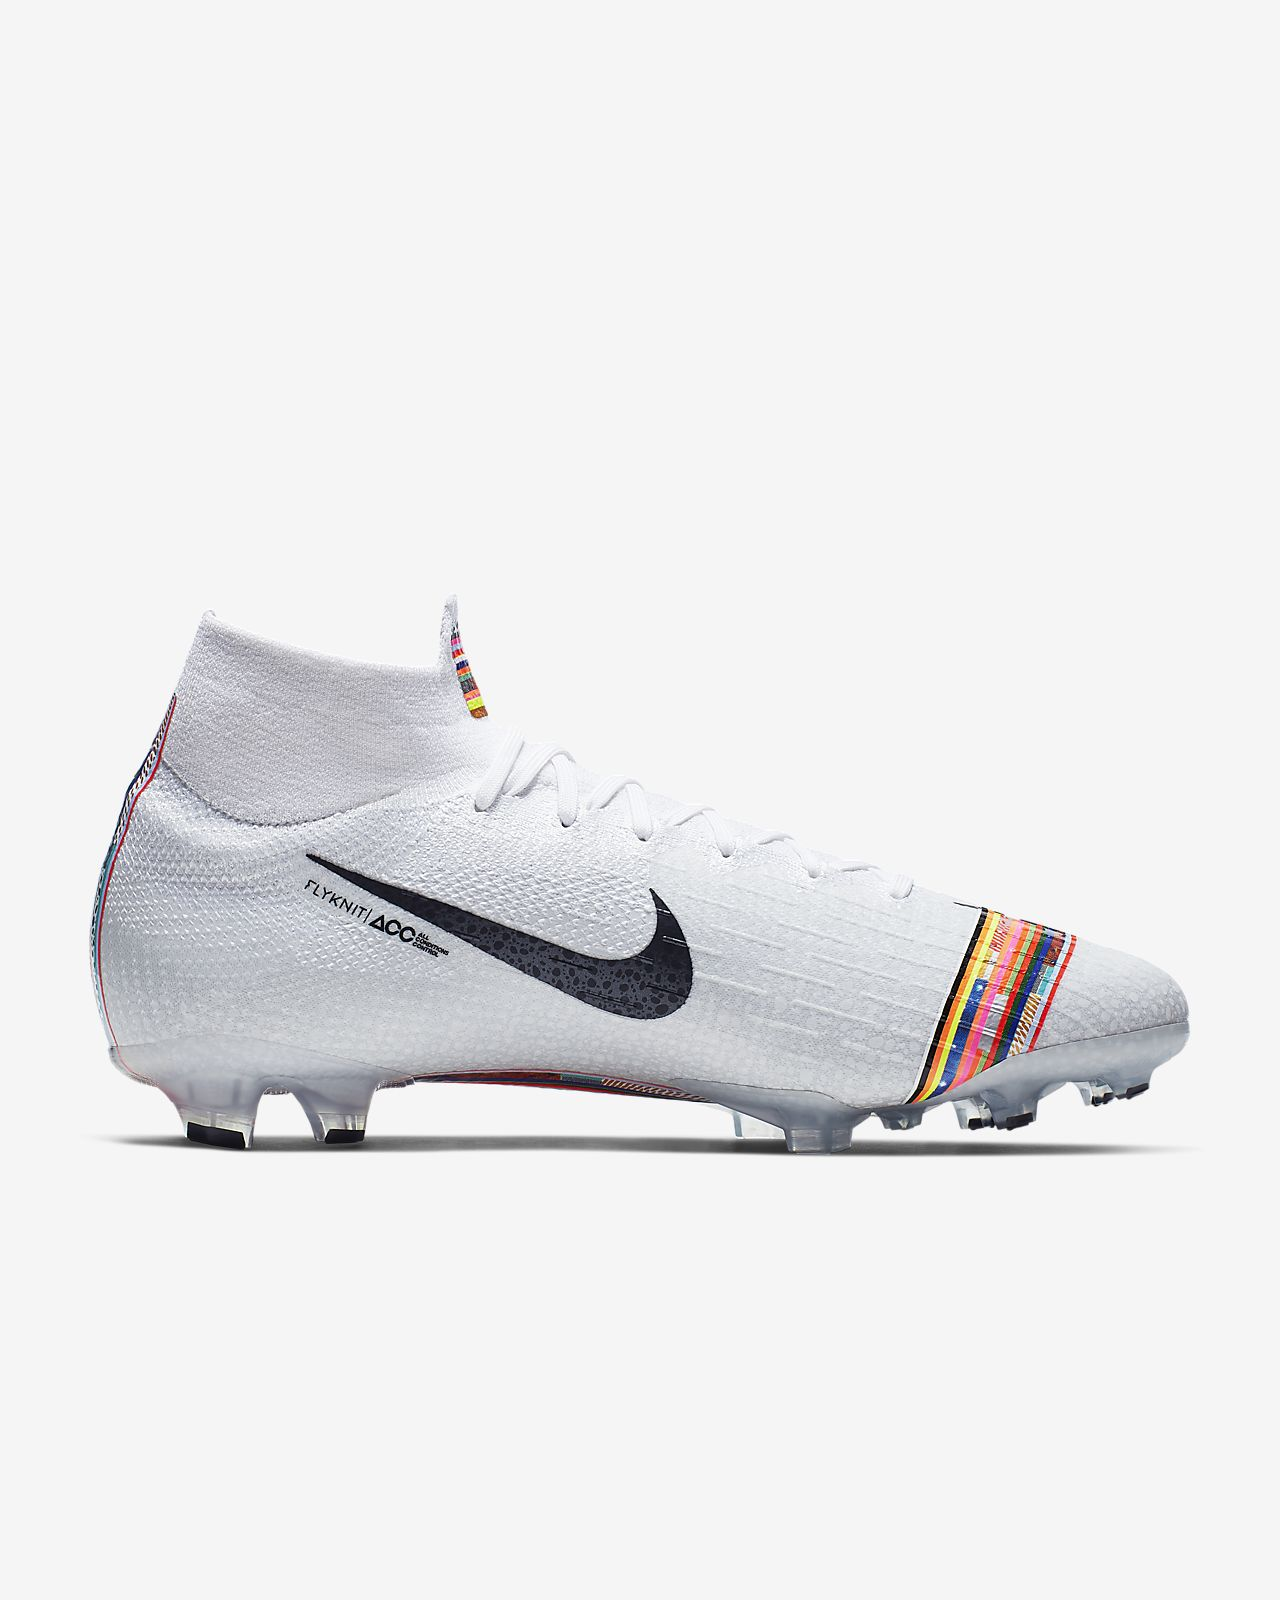 reputable site cdde4 4713b Nike Mercurial Superfly 360 Elite LVL UP SE FG Firm-Ground Football Boot